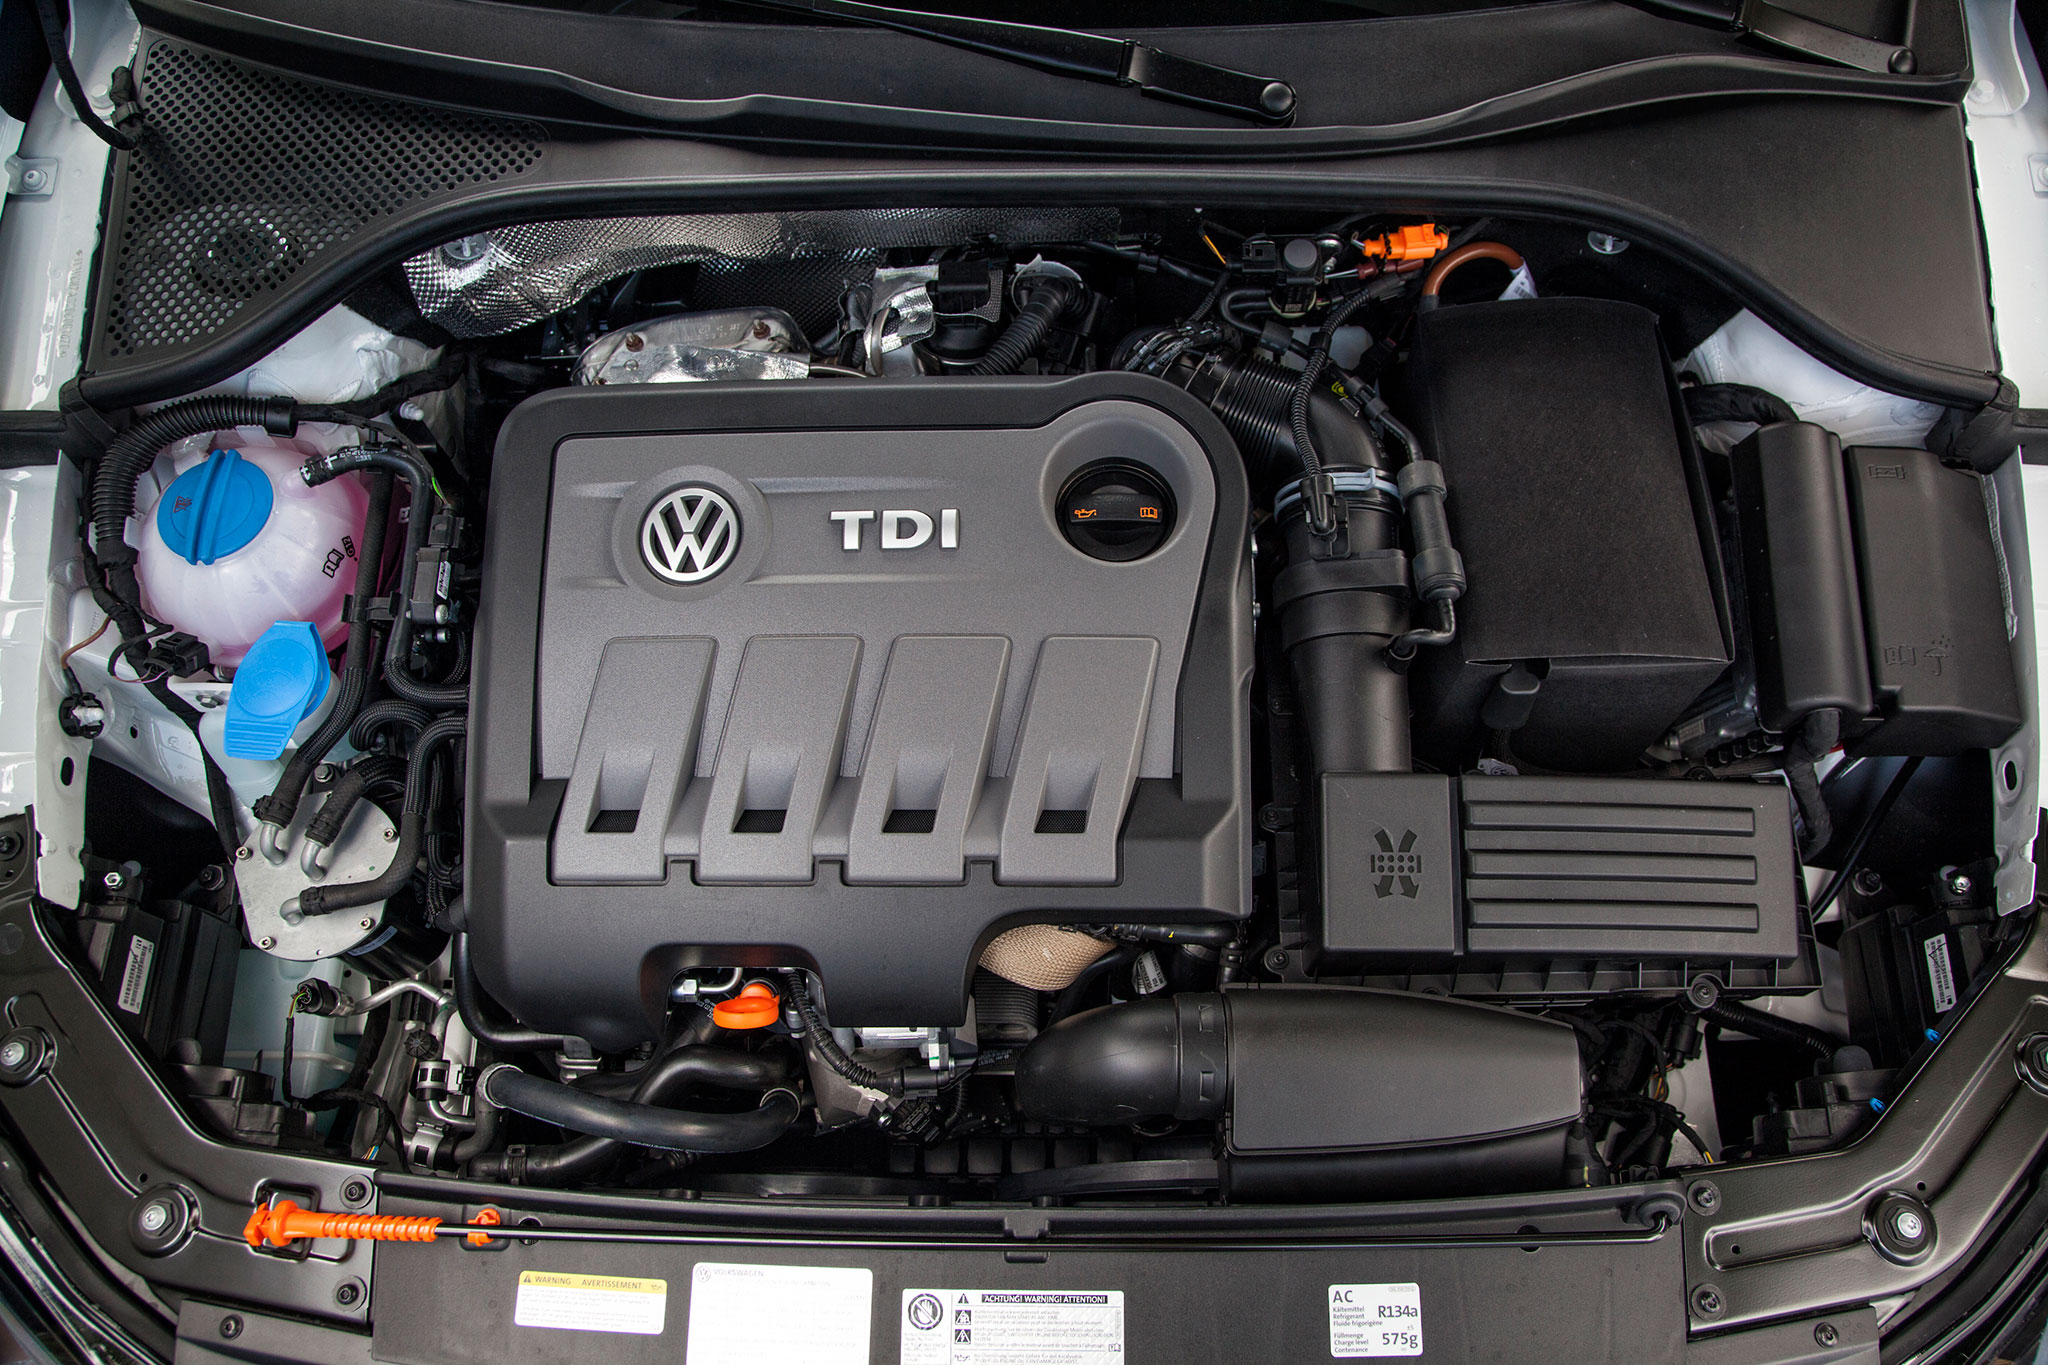 2014 Volkswagen Passat TDI SEL engine turn your volkswagen jetta into a pickup for $3500 VW Jetta 2.0 Engine Diagram at creativeand.co